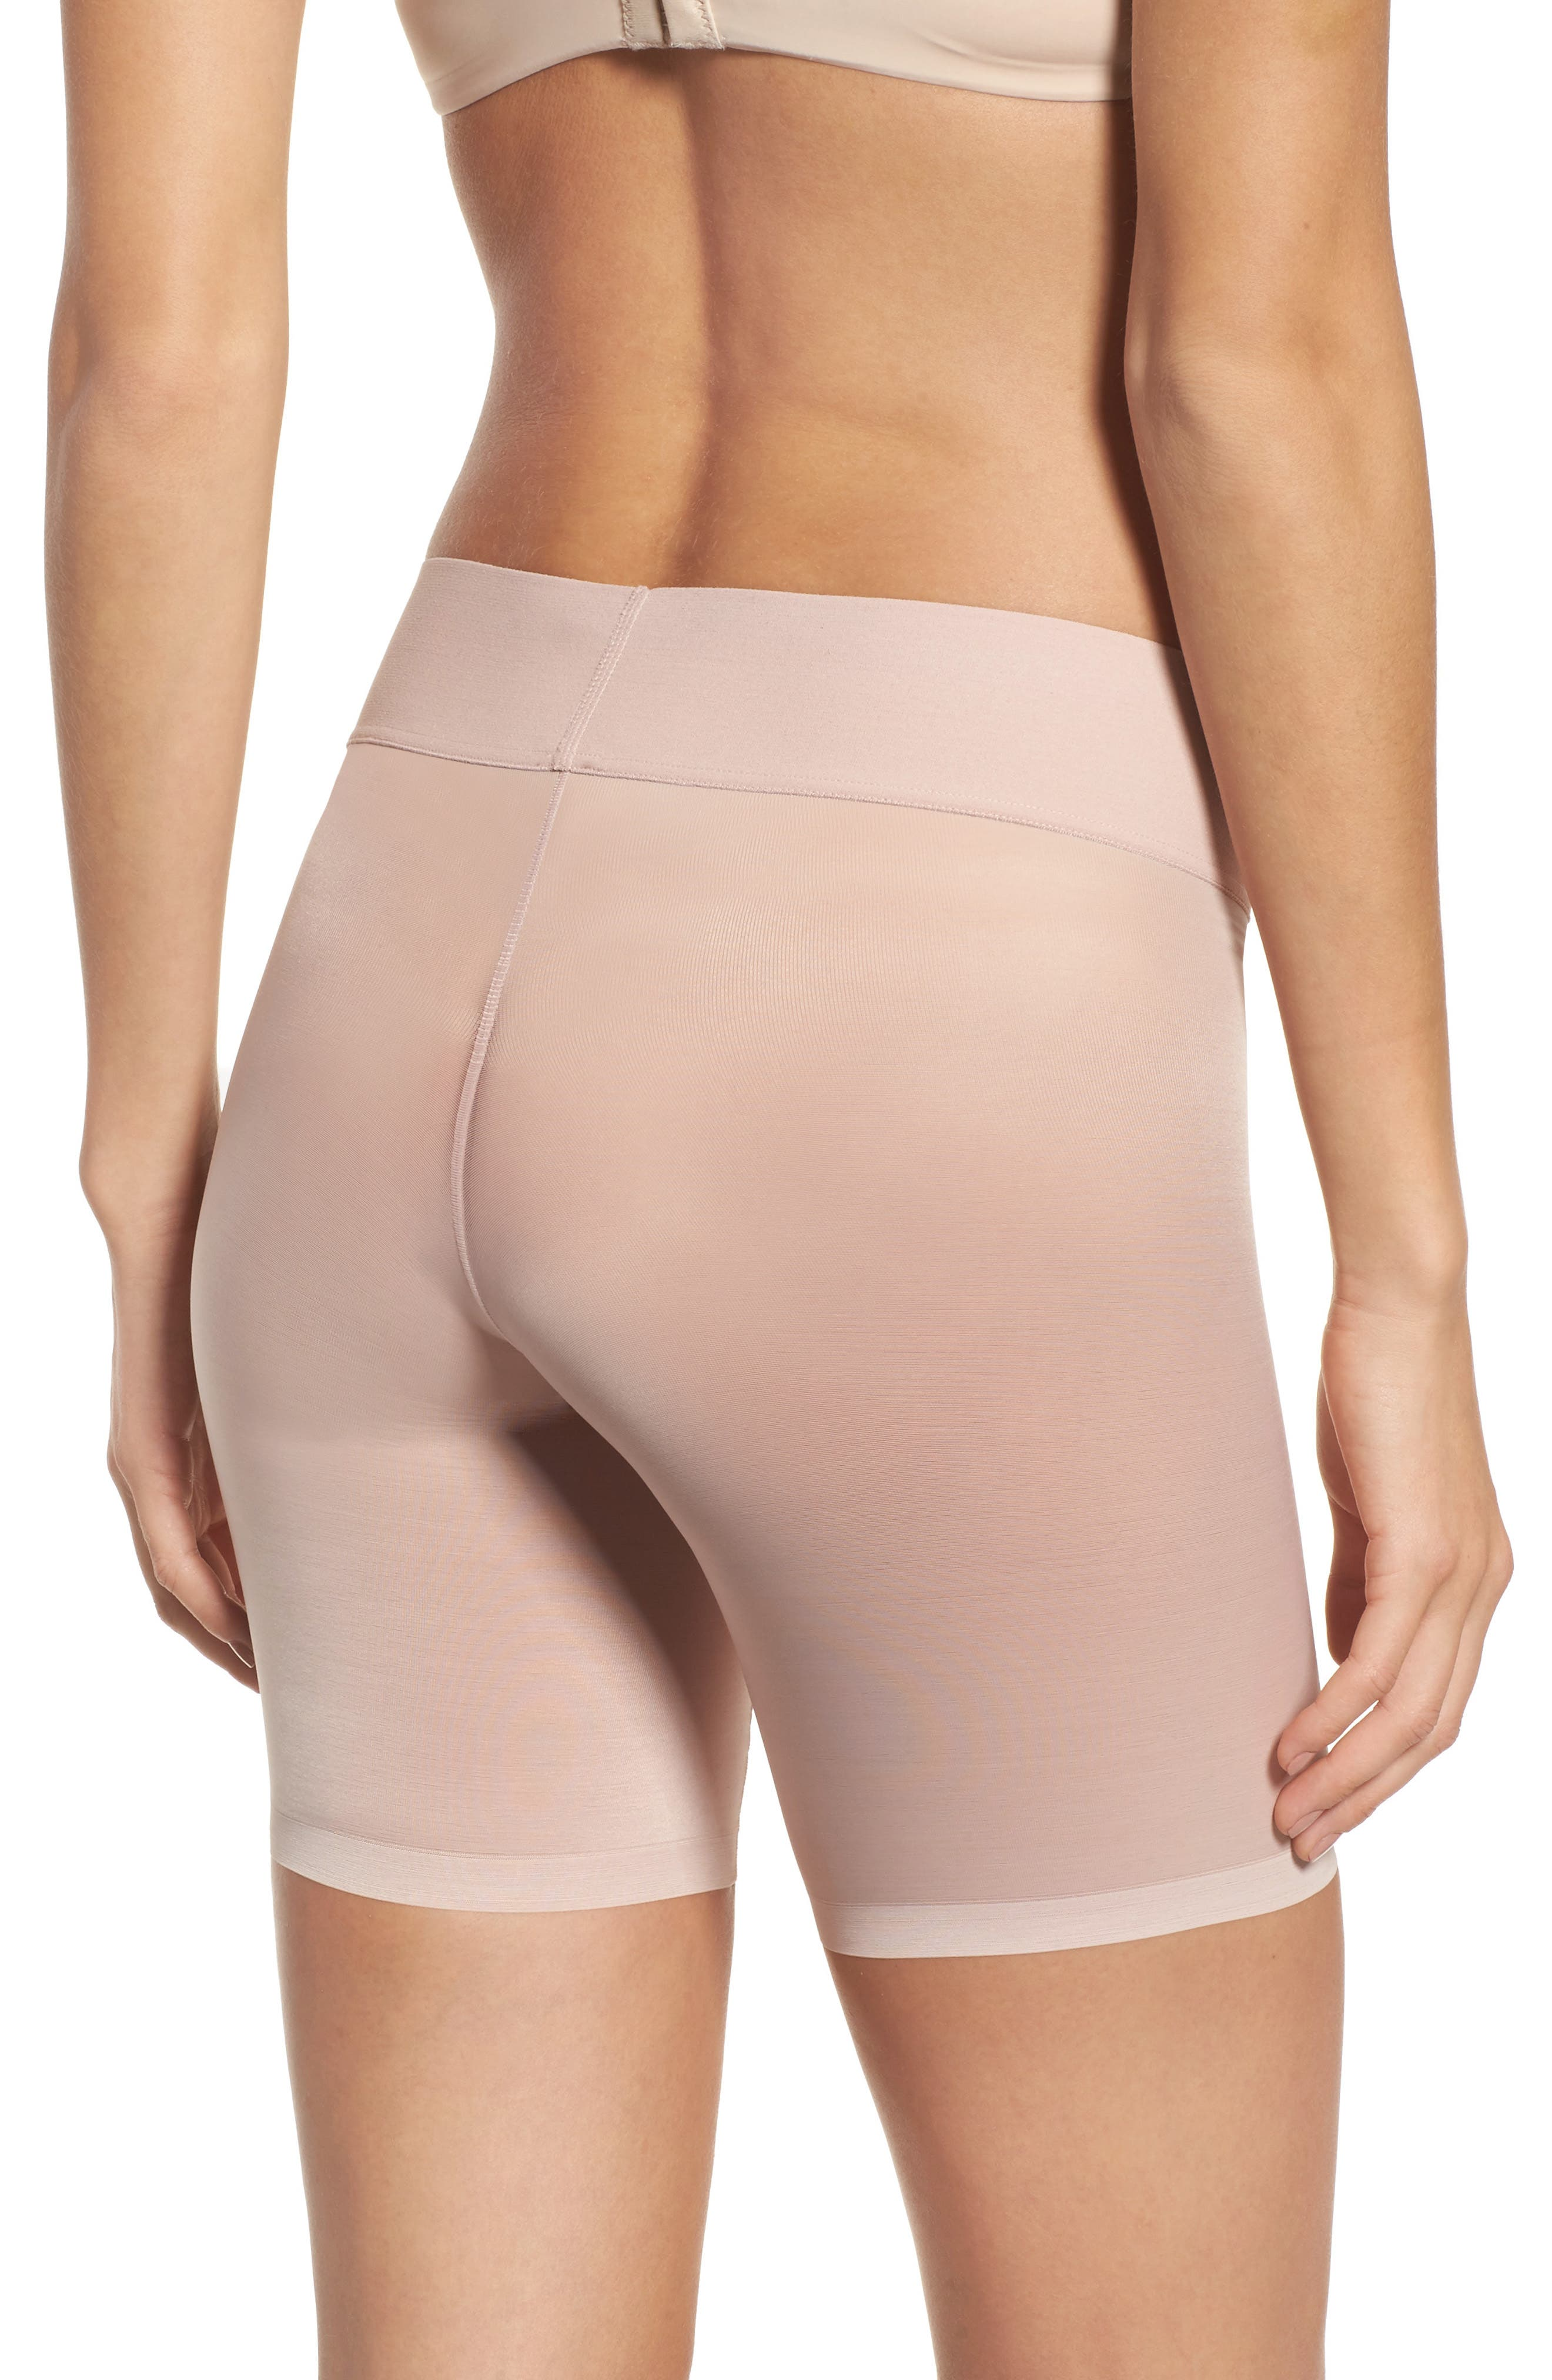 Sheer Touch Control Shorts,                             Alternate thumbnail 2, color,                             Rosepowder